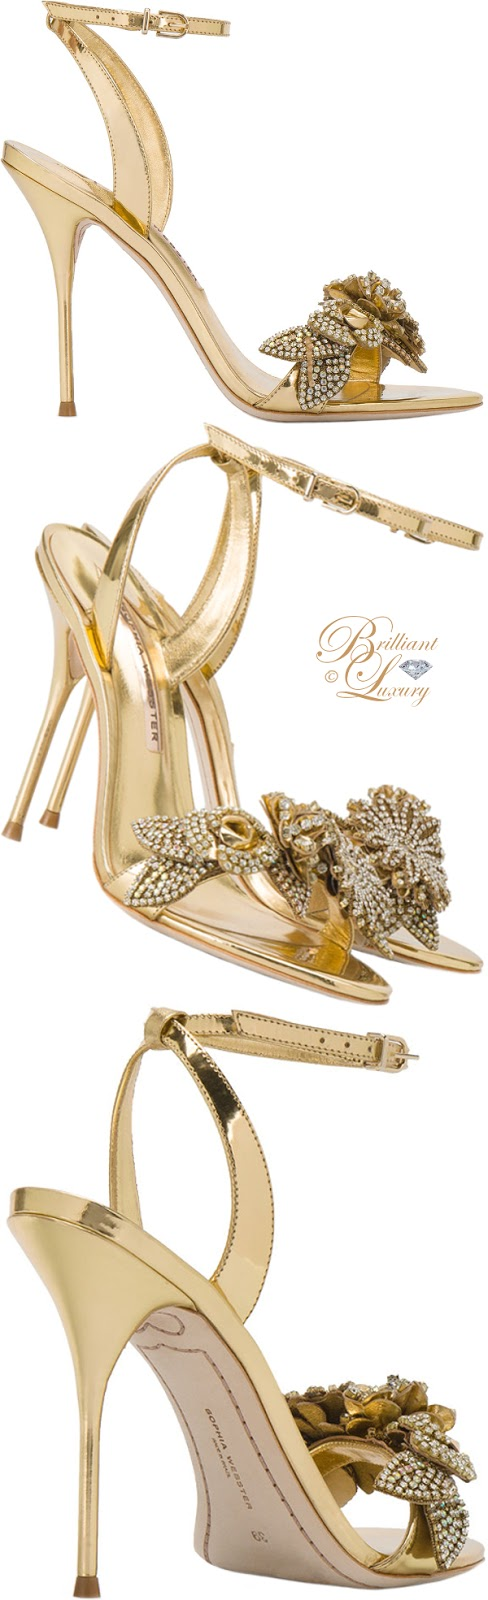 Brilliant Luxury ♦ Sophia Webster gold leather Lilico sandals